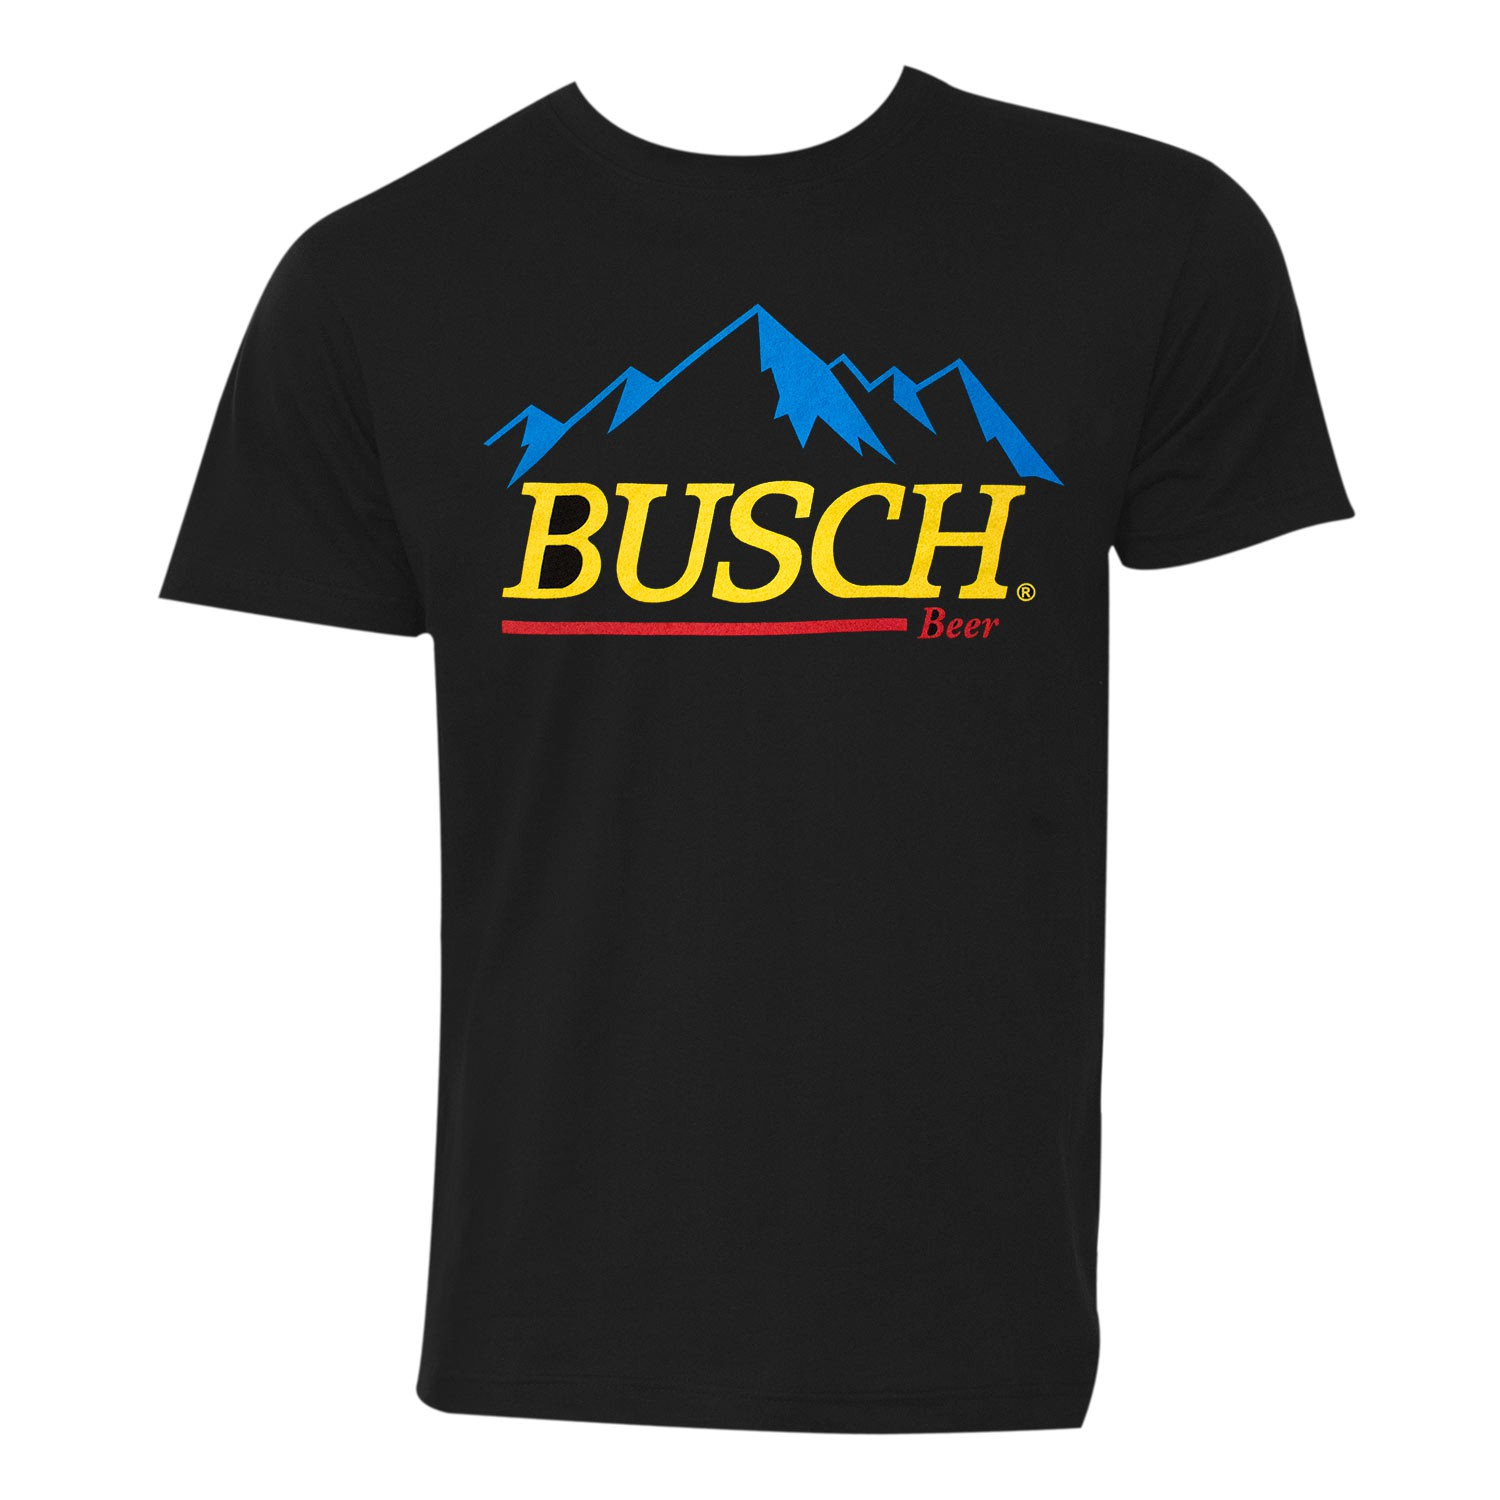 Busch Beer Gold Logo Black Tee Shirt